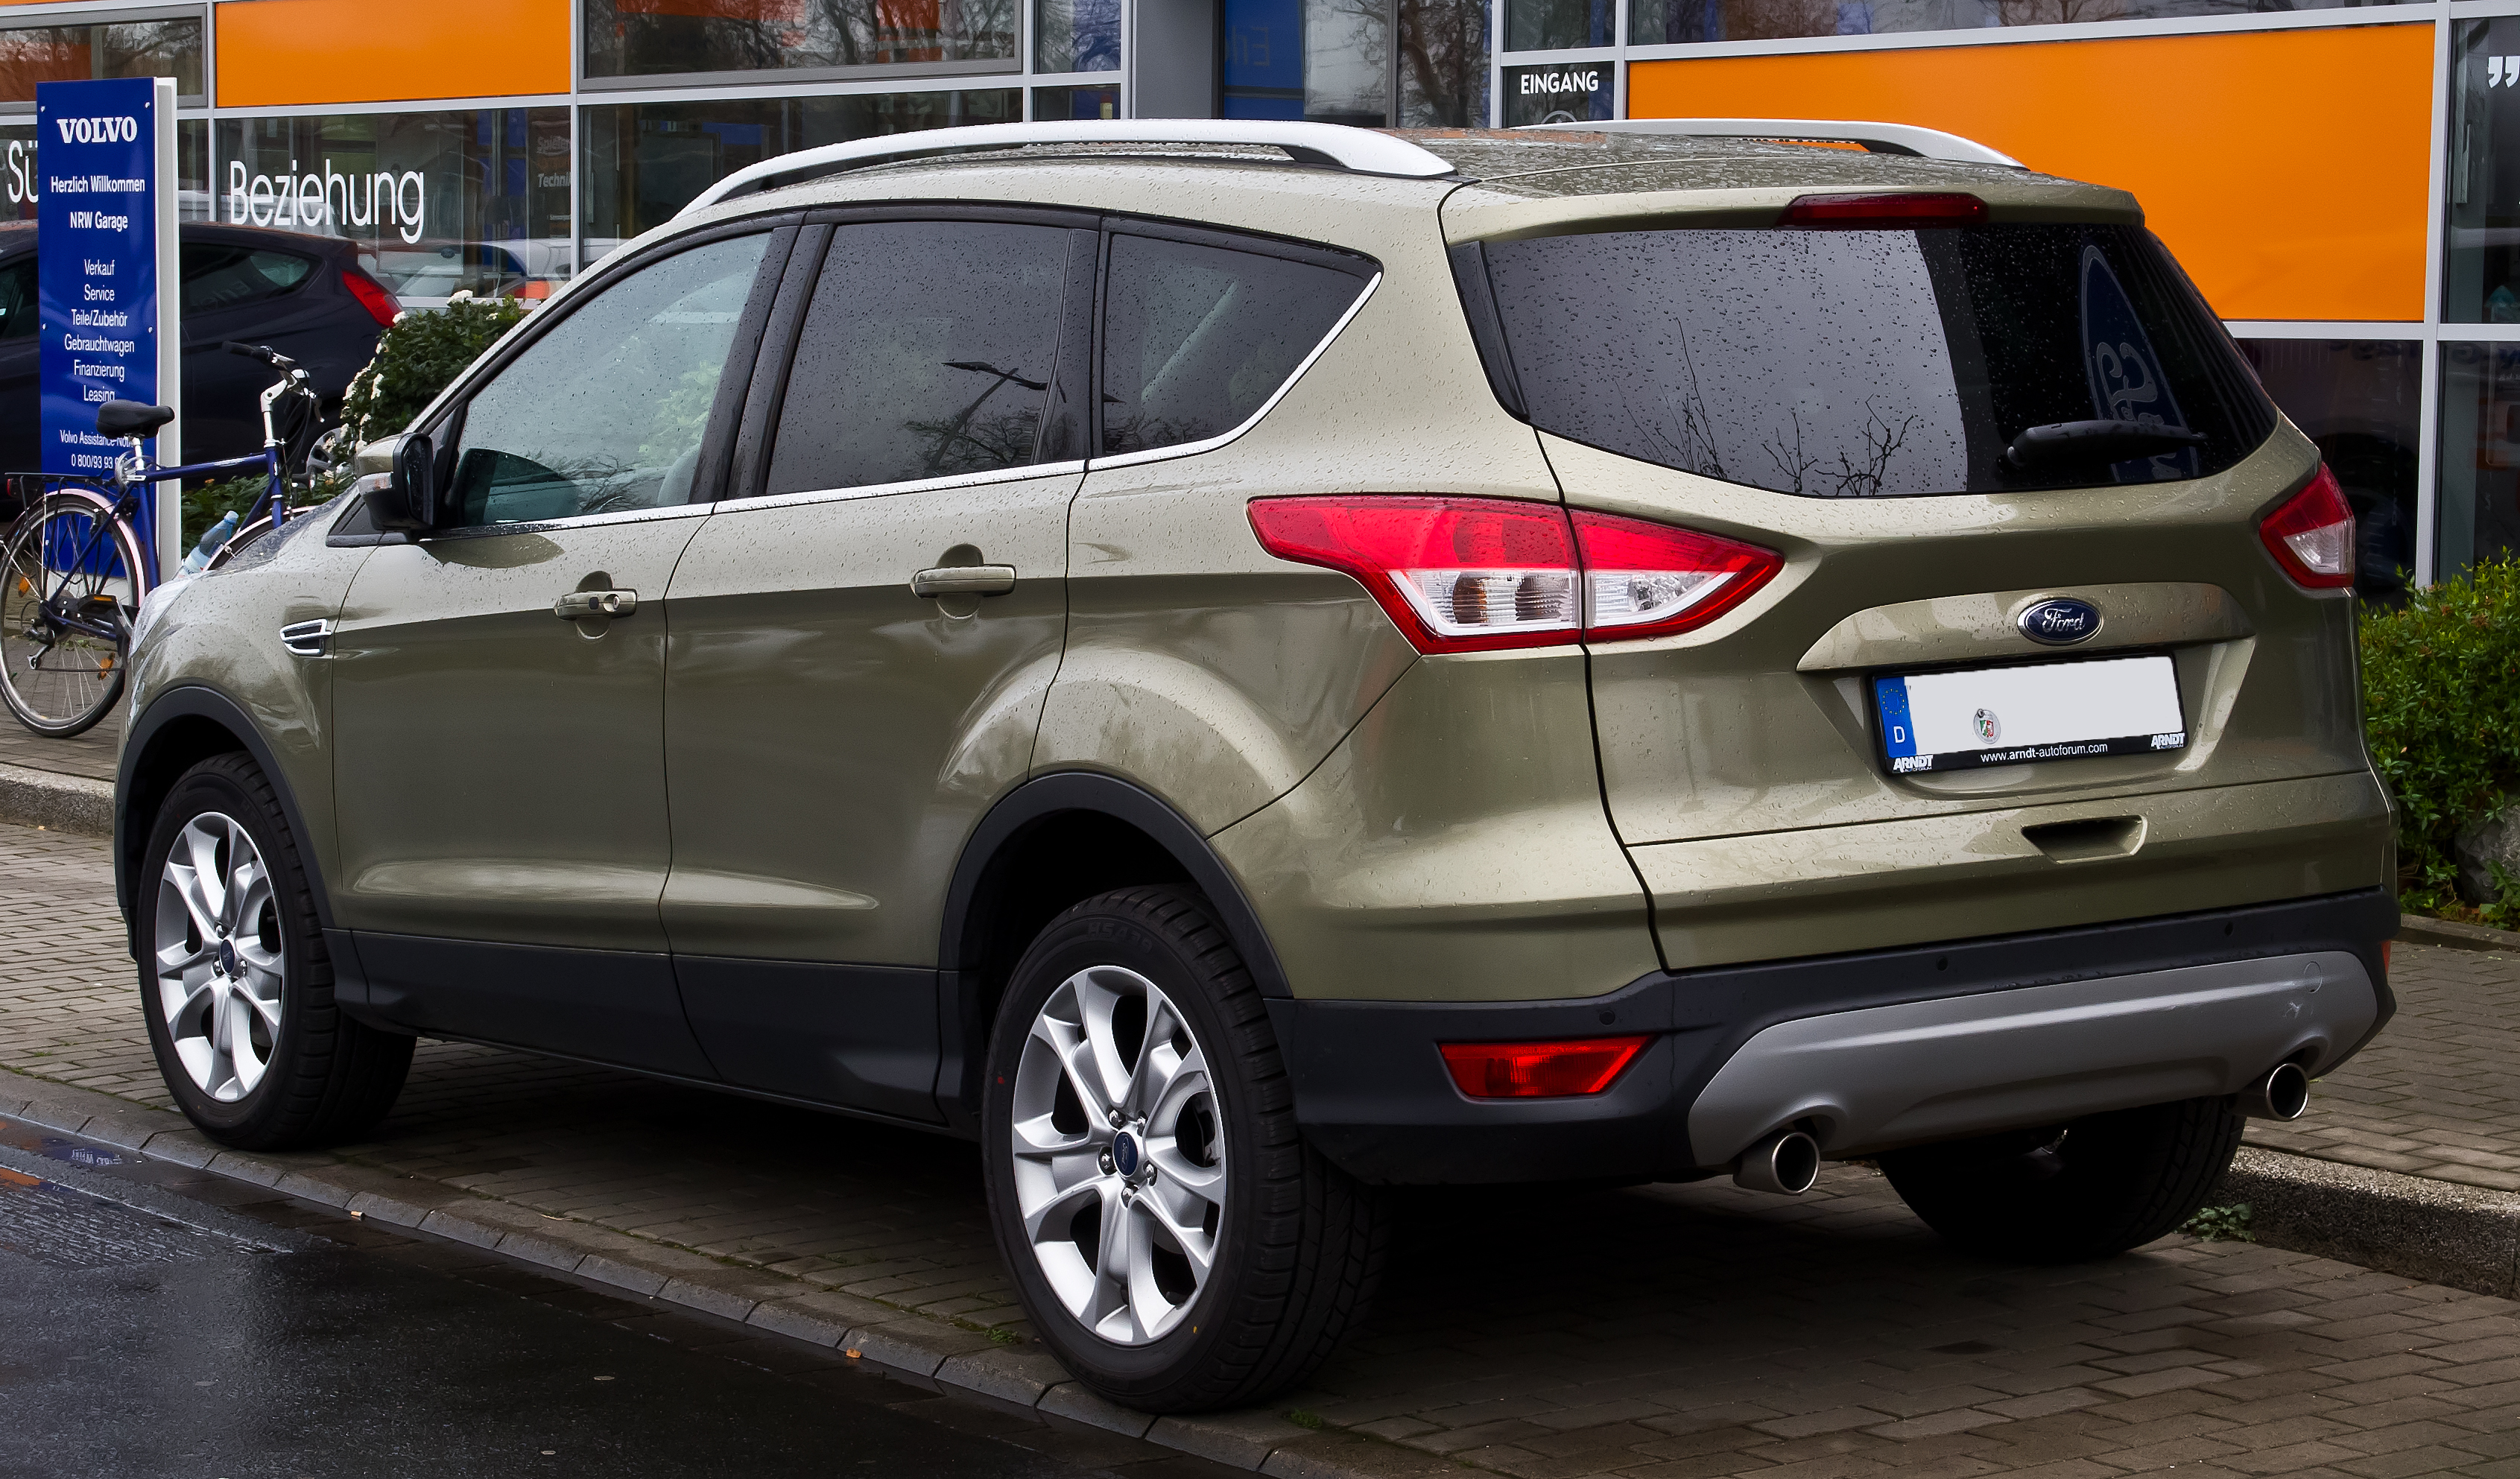 datei ford kuga titanium ii heckansicht 22 m rz 2014 d wikipedia. Black Bedroom Furniture Sets. Home Design Ideas